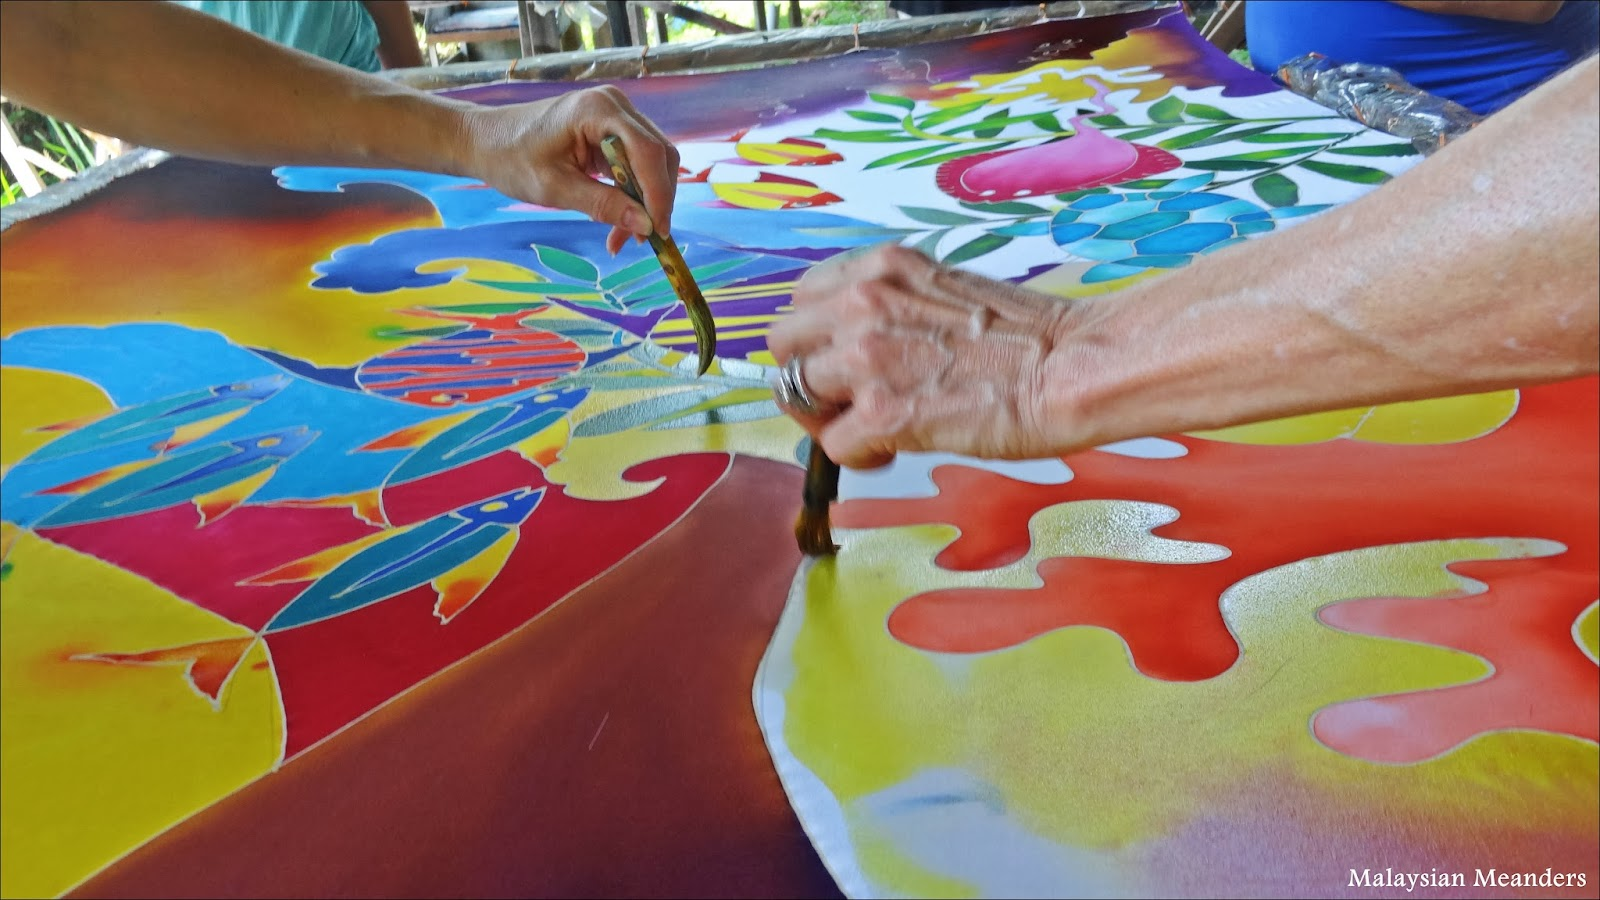 Malaysian Meanders: A Crash Course in Batik Painting